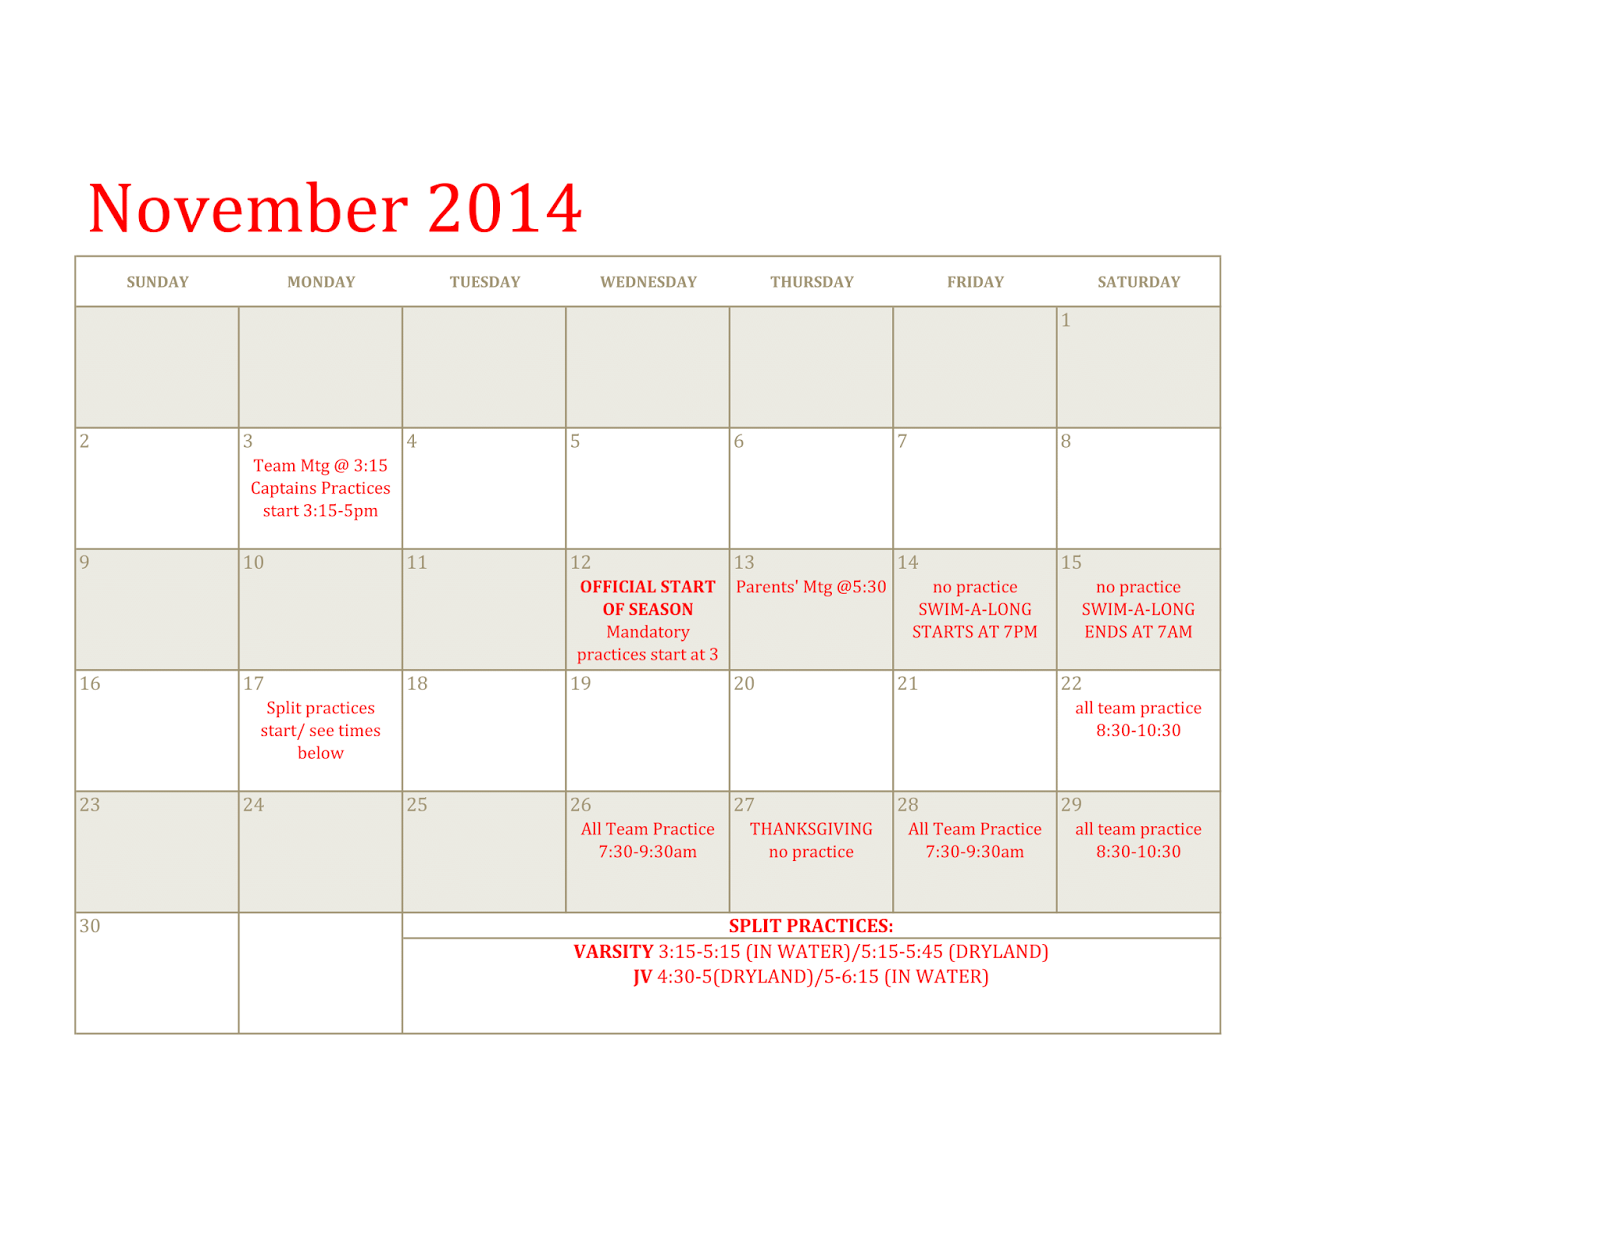 Coronado cougars ladies swimming and diving Agincourt swimming pool schedule 2014